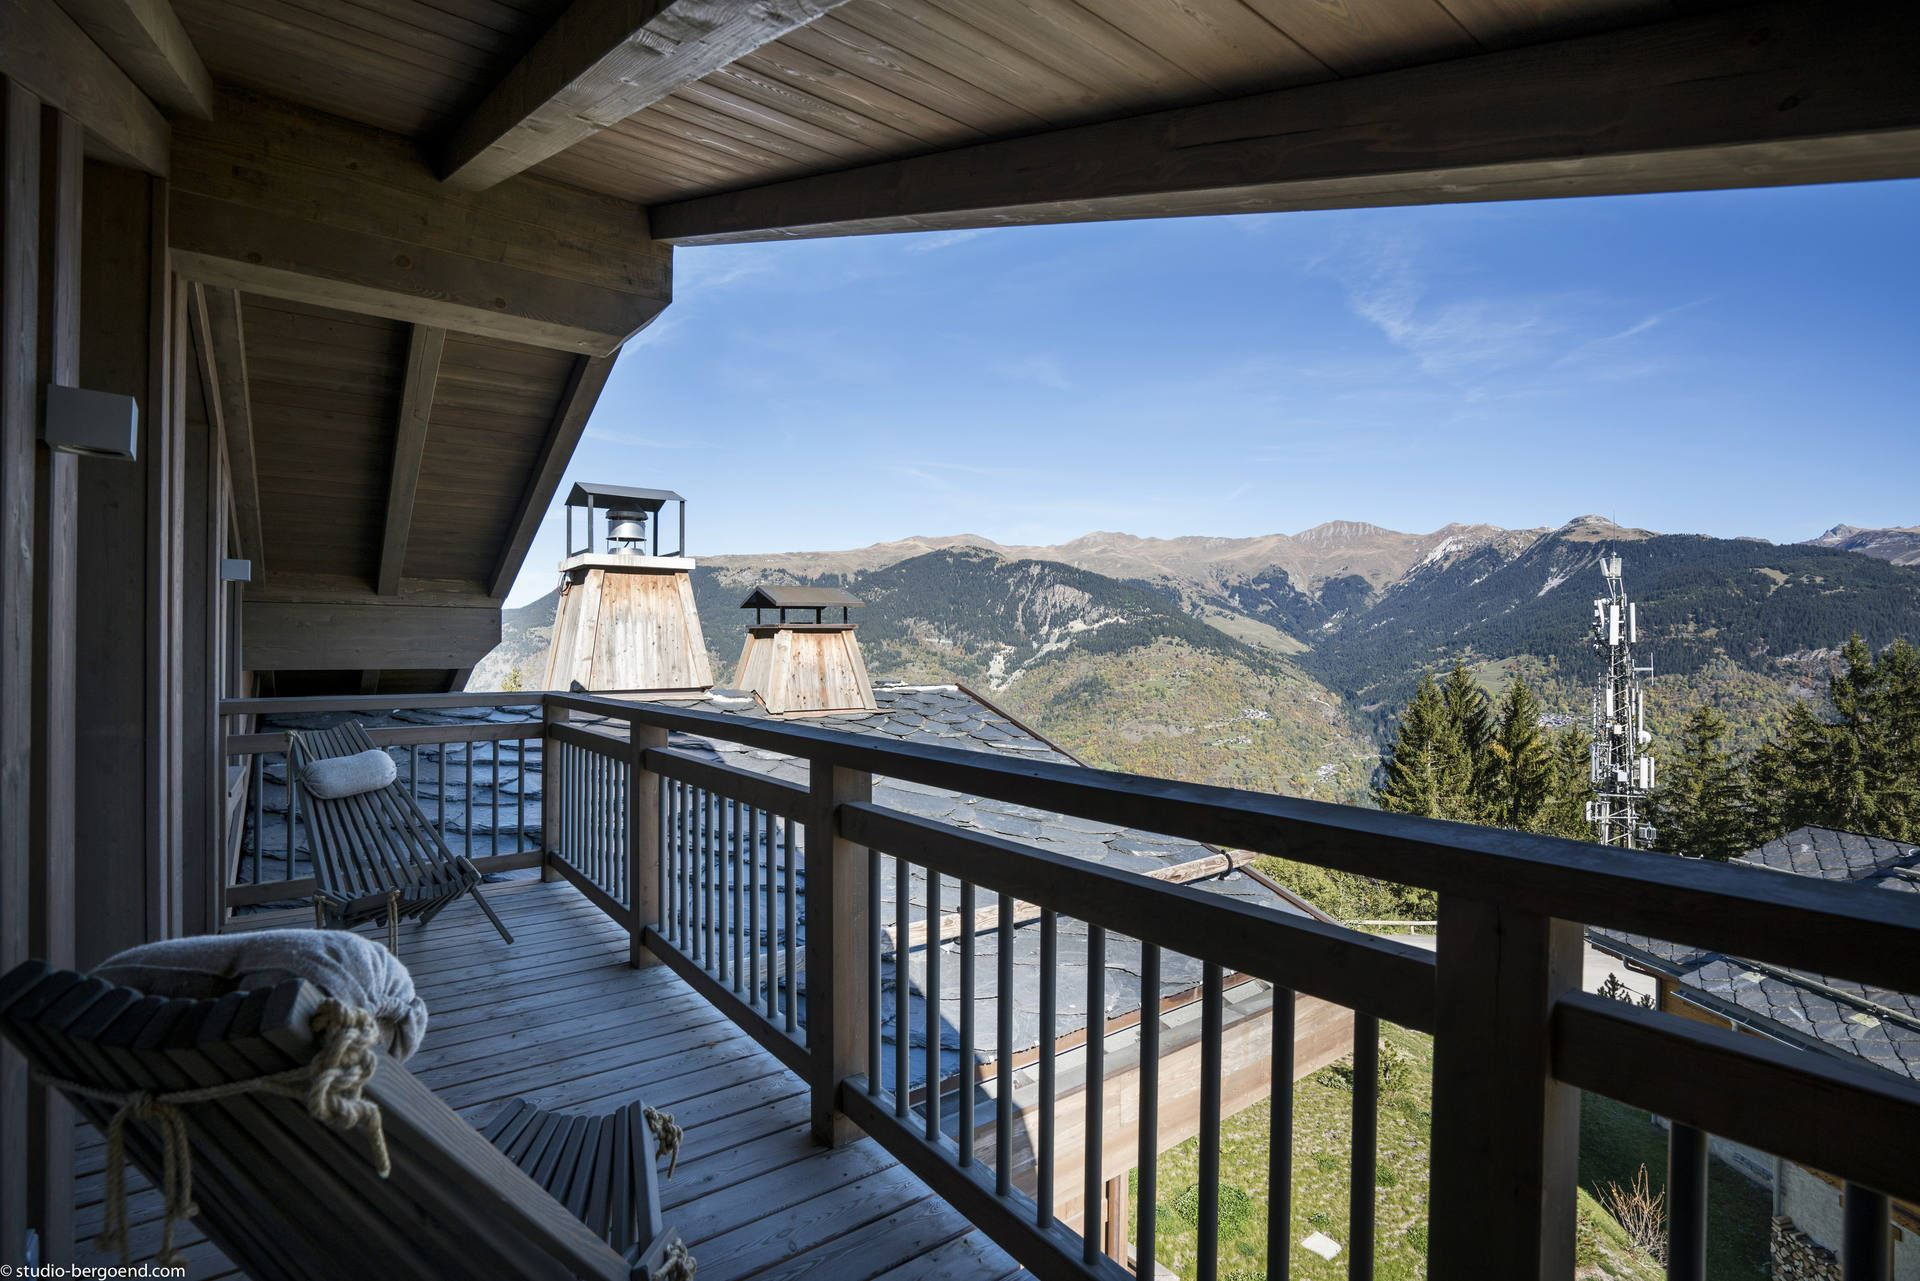 10 personnes / Chalet Monch (Montagne d'exception)